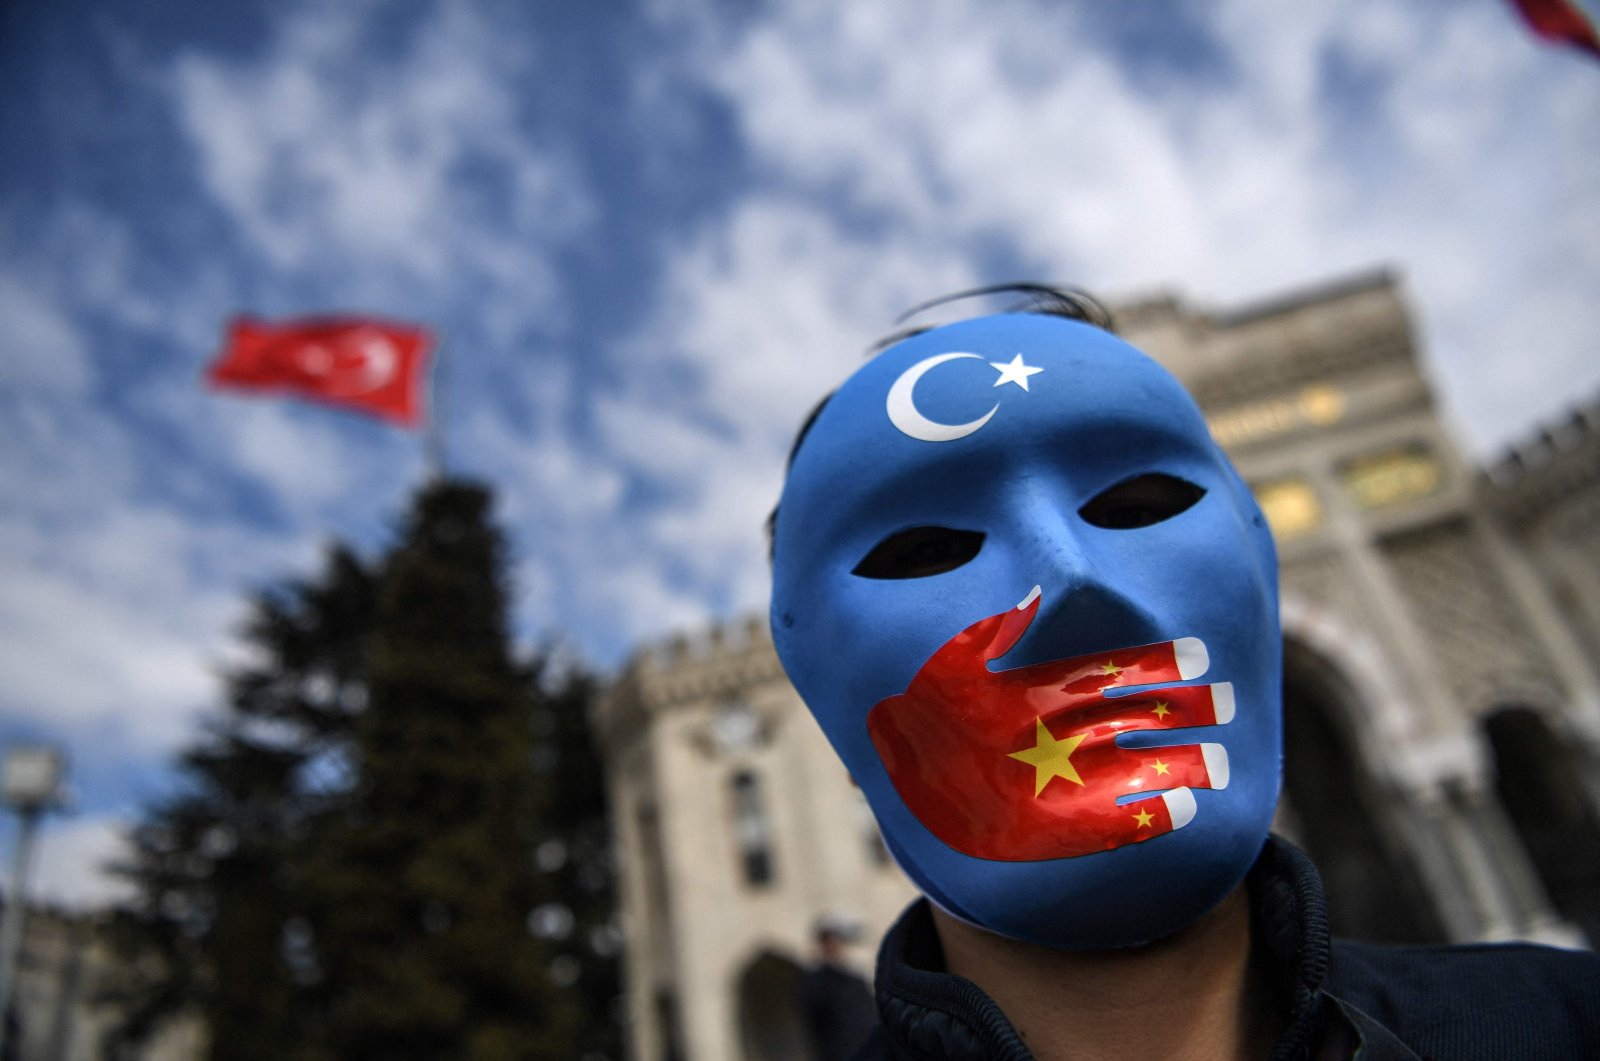 A demonstrator wearing a mask painted with the colors of the flag of East Turkestan takes part in a protest by supporters of the Uyghur minority, at Beyazıt square, Istanbul, Turkey, April 1, 2021. (AFP Photo)